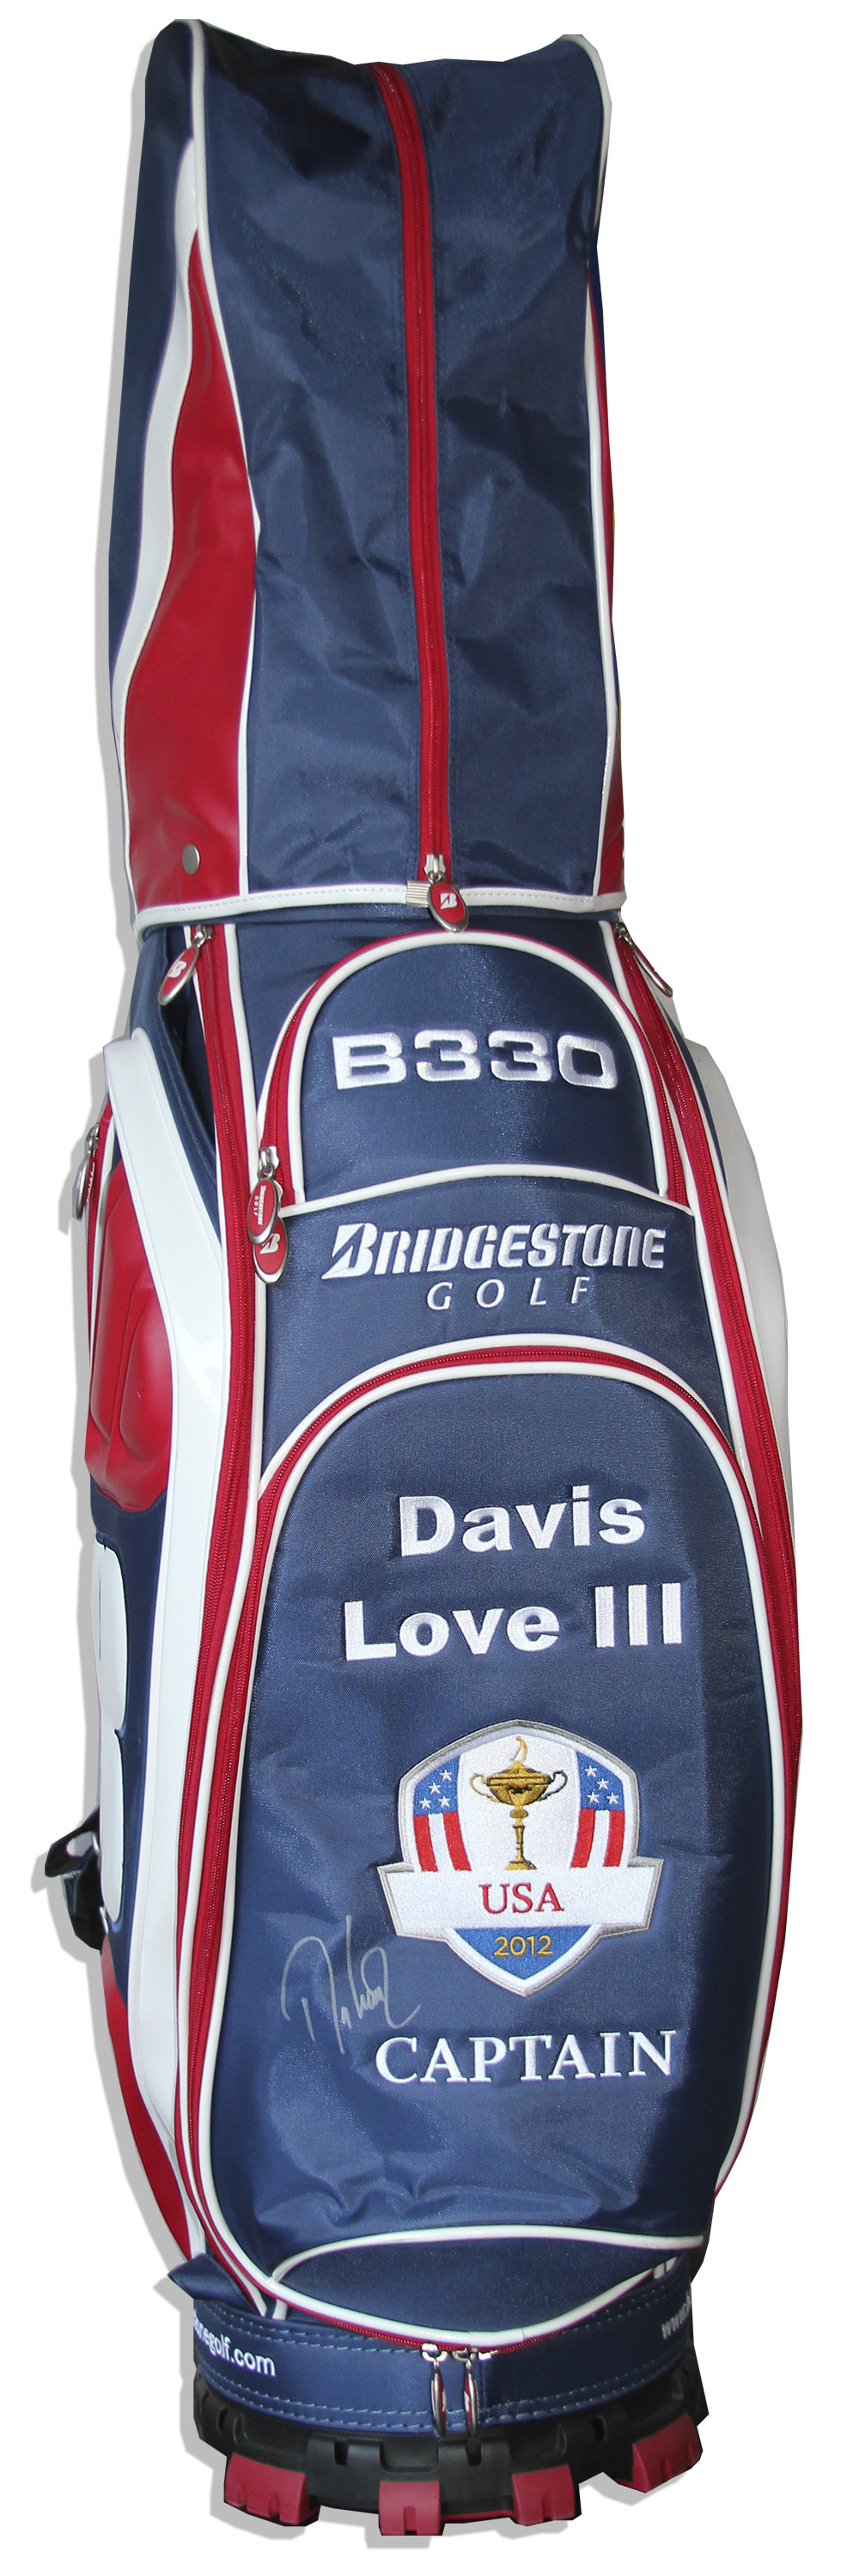 Lot detail davis love iii signed golf bag used at the